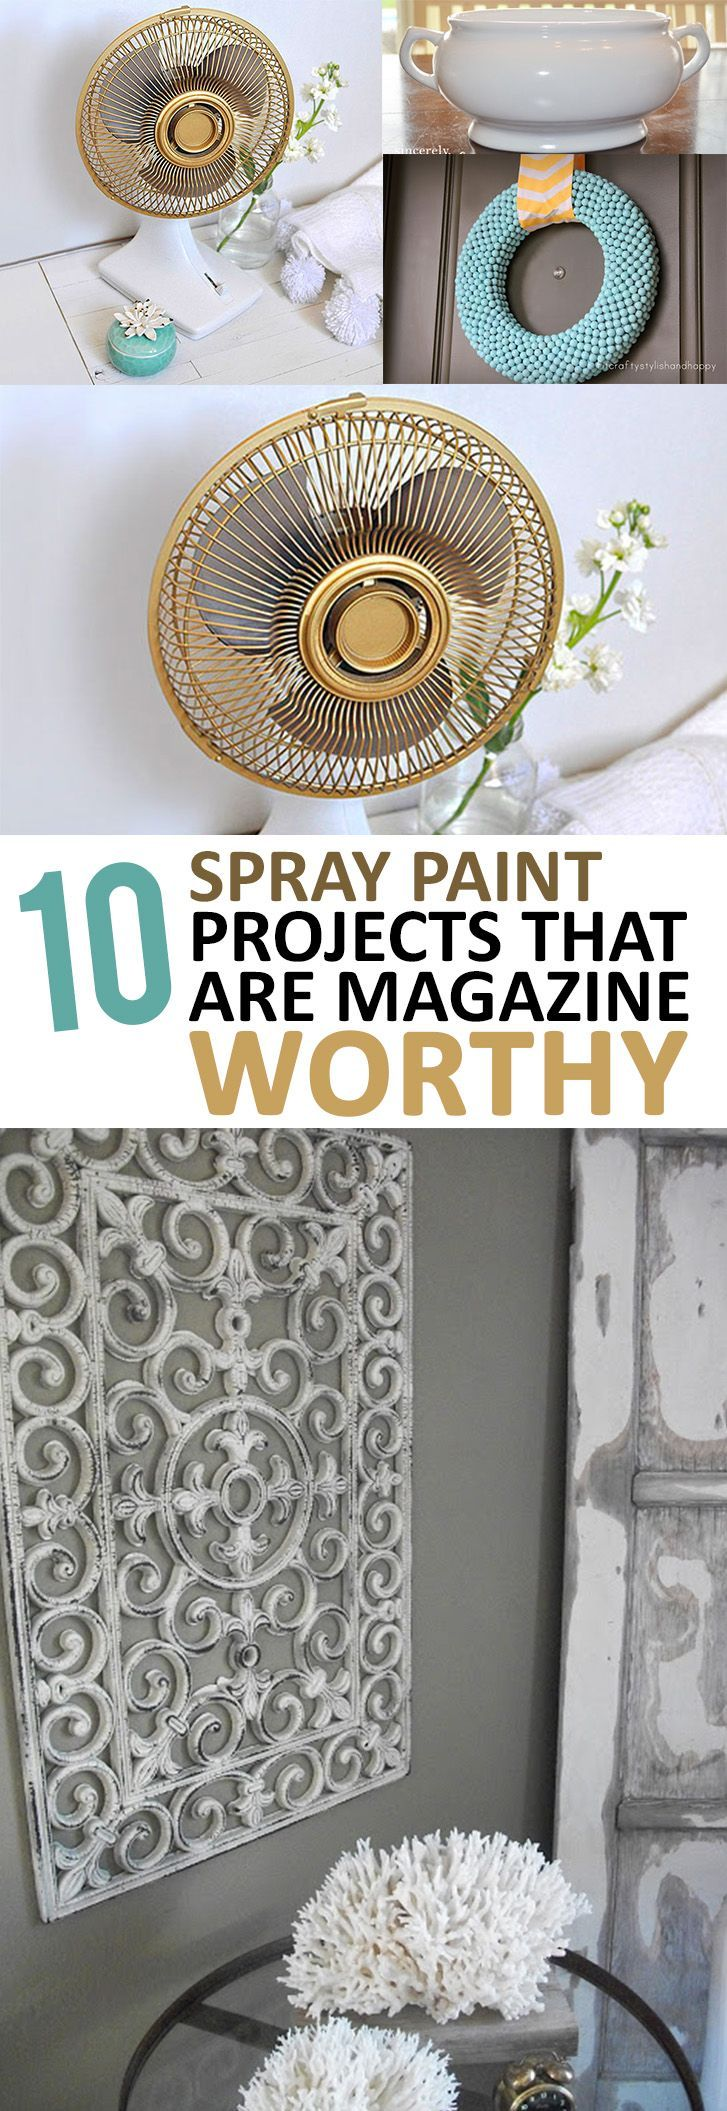 Amazing DIY home decor projects using spray paint!                                                                                                                                                                                 More